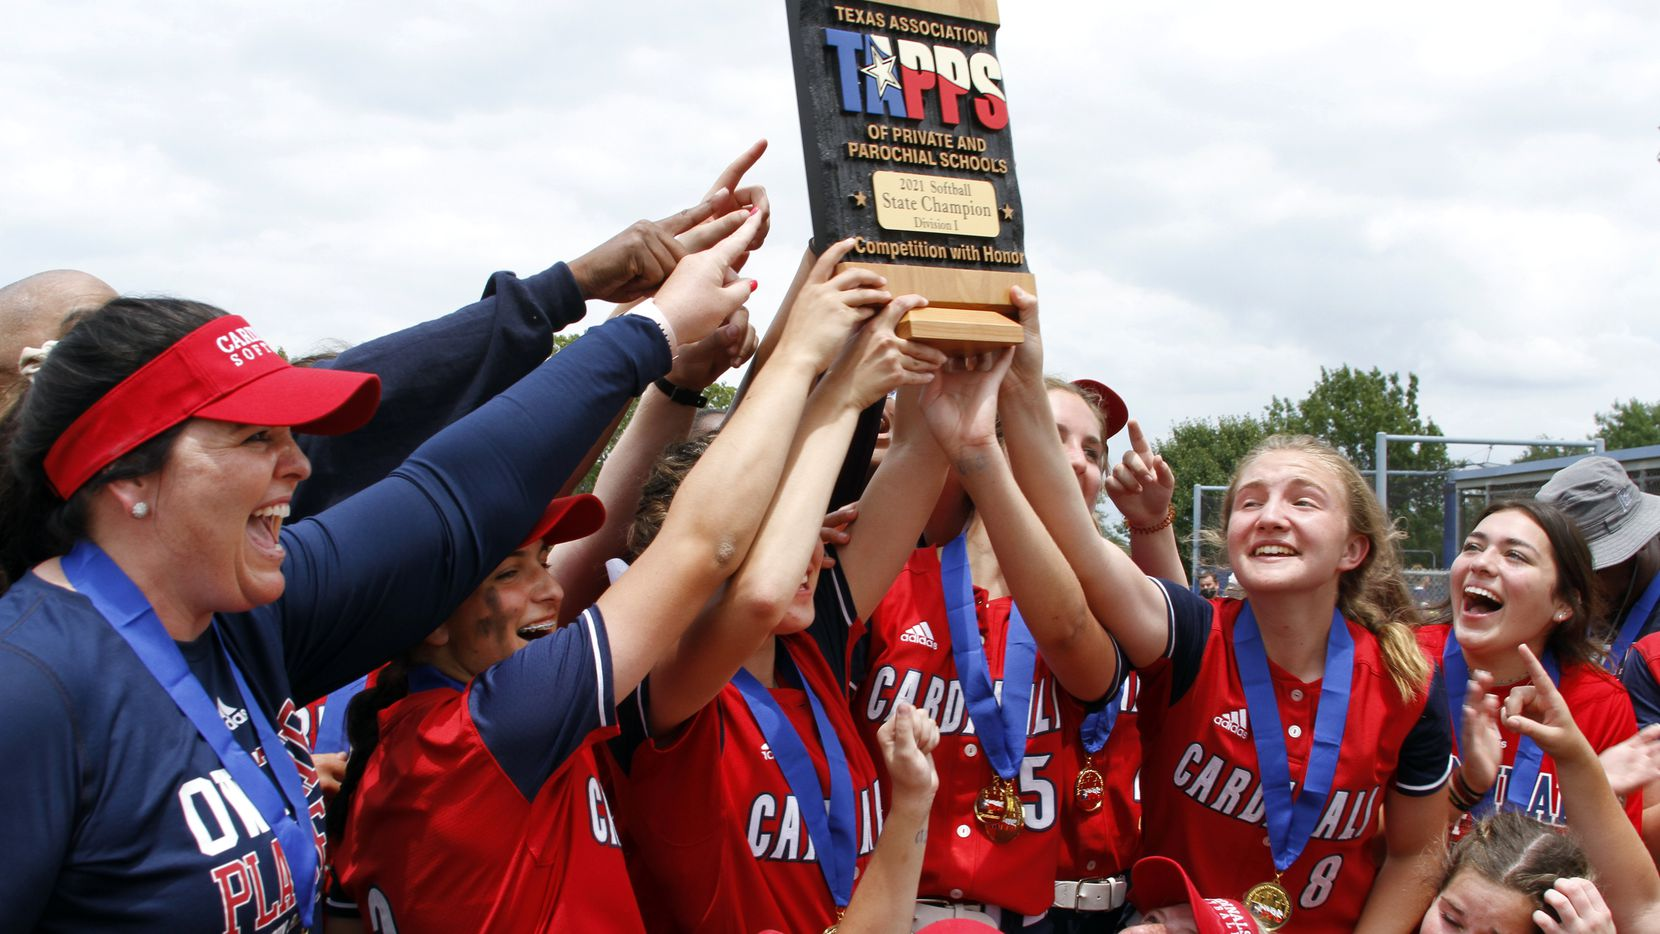 Plano John Paul ll softball coach Jayme Baker-Nelson (left) and her players celebrate by hoisting the state championship trophy following a 4-2 victory over San Antonio Antonian in the TAPPS Division I state title game Saturday at the Waco ISD Softball Complex. (Steve Hamm/Special Contributor)